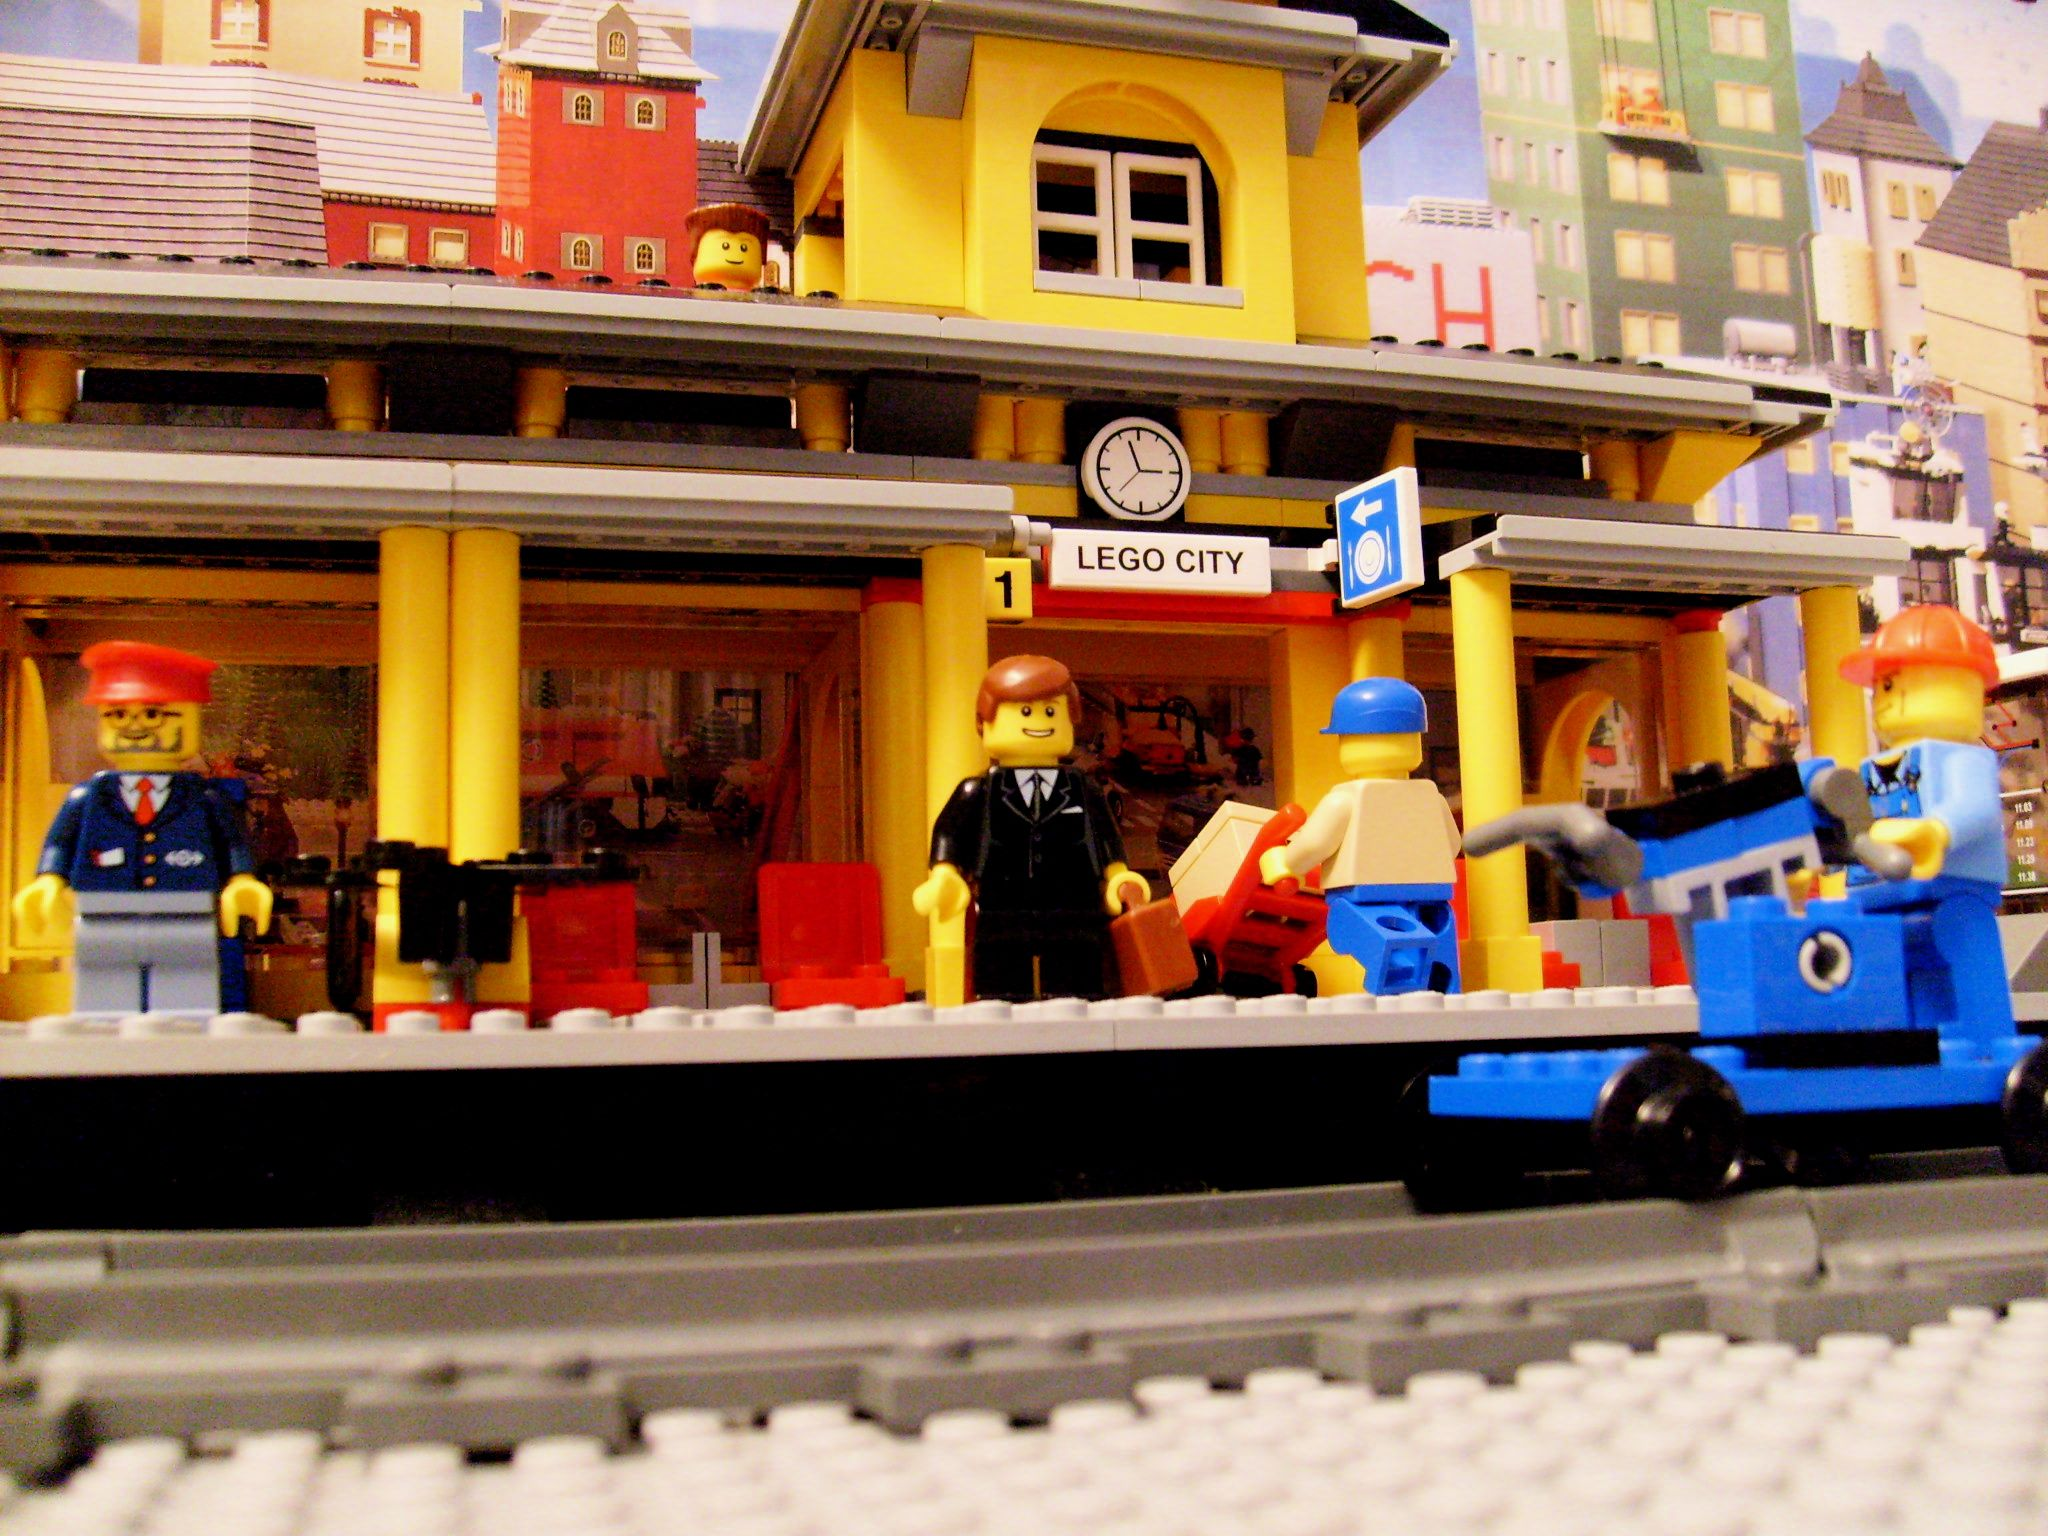 Lego 7997 1 Train Station 2007 This Set Gave Me My Town S Second Ever Platform Meaning That Passengers Didn T Have To Get Off Wh Lego City Lego My Town